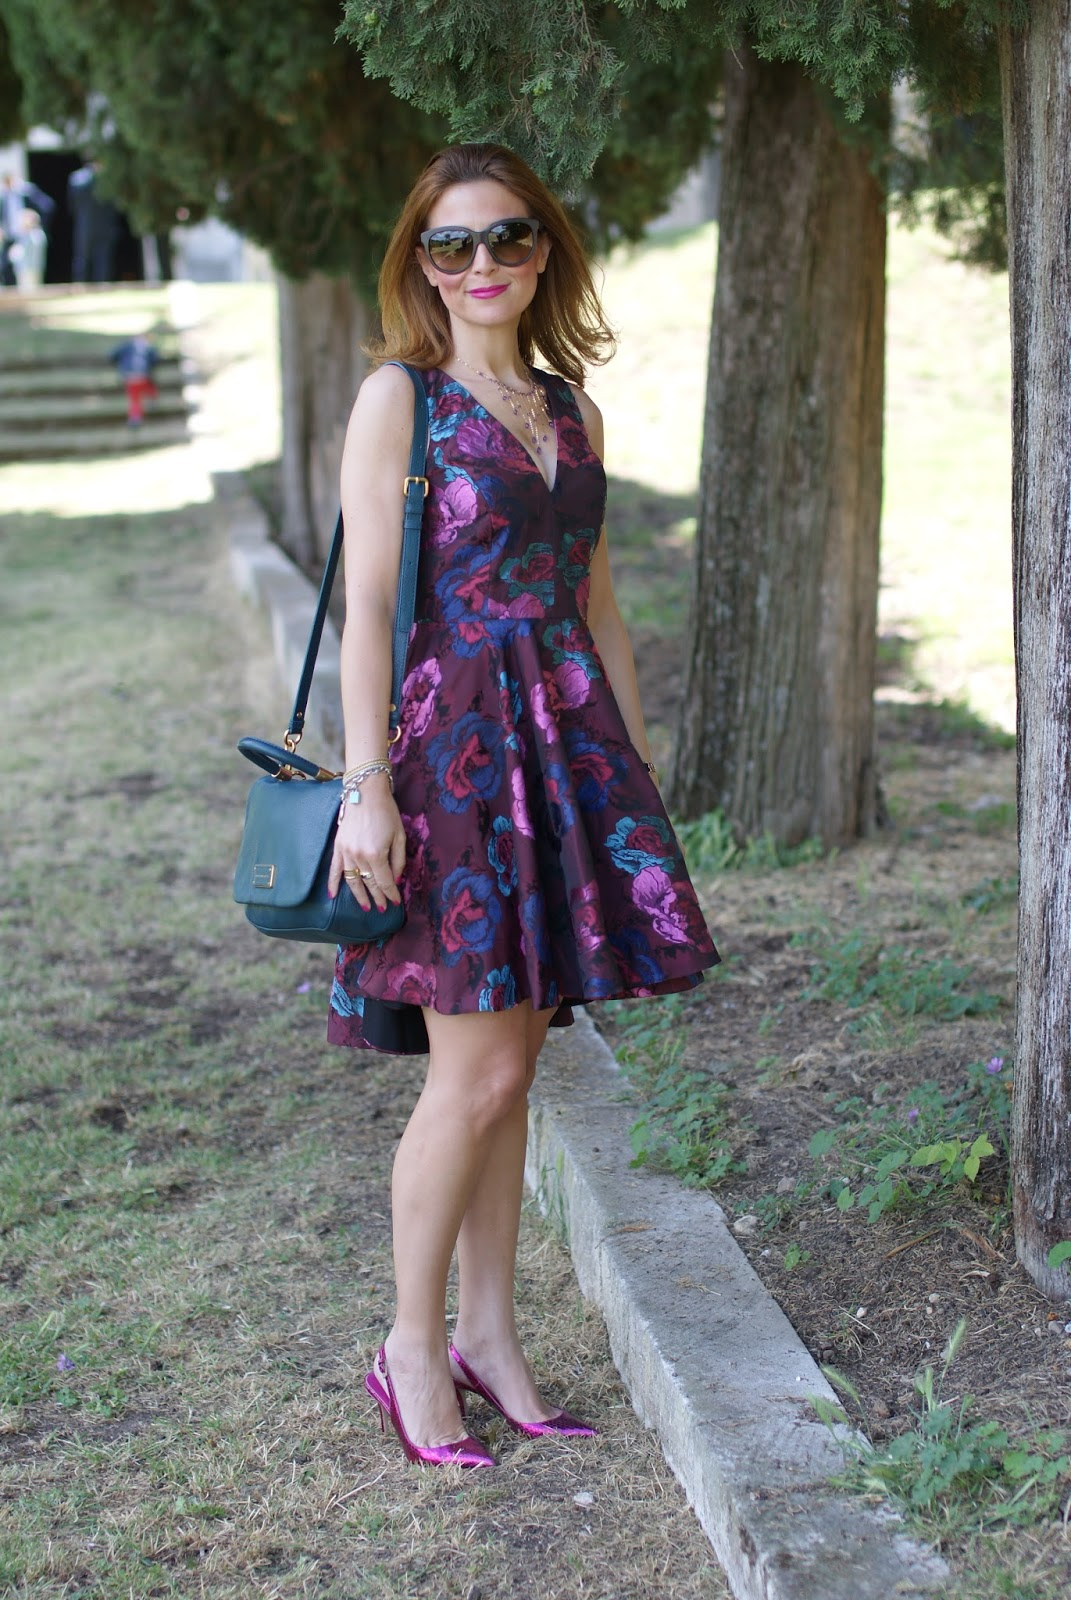 Asos jacquard floral dress on Fashion and Cookies fashion blog, fashion blogger style